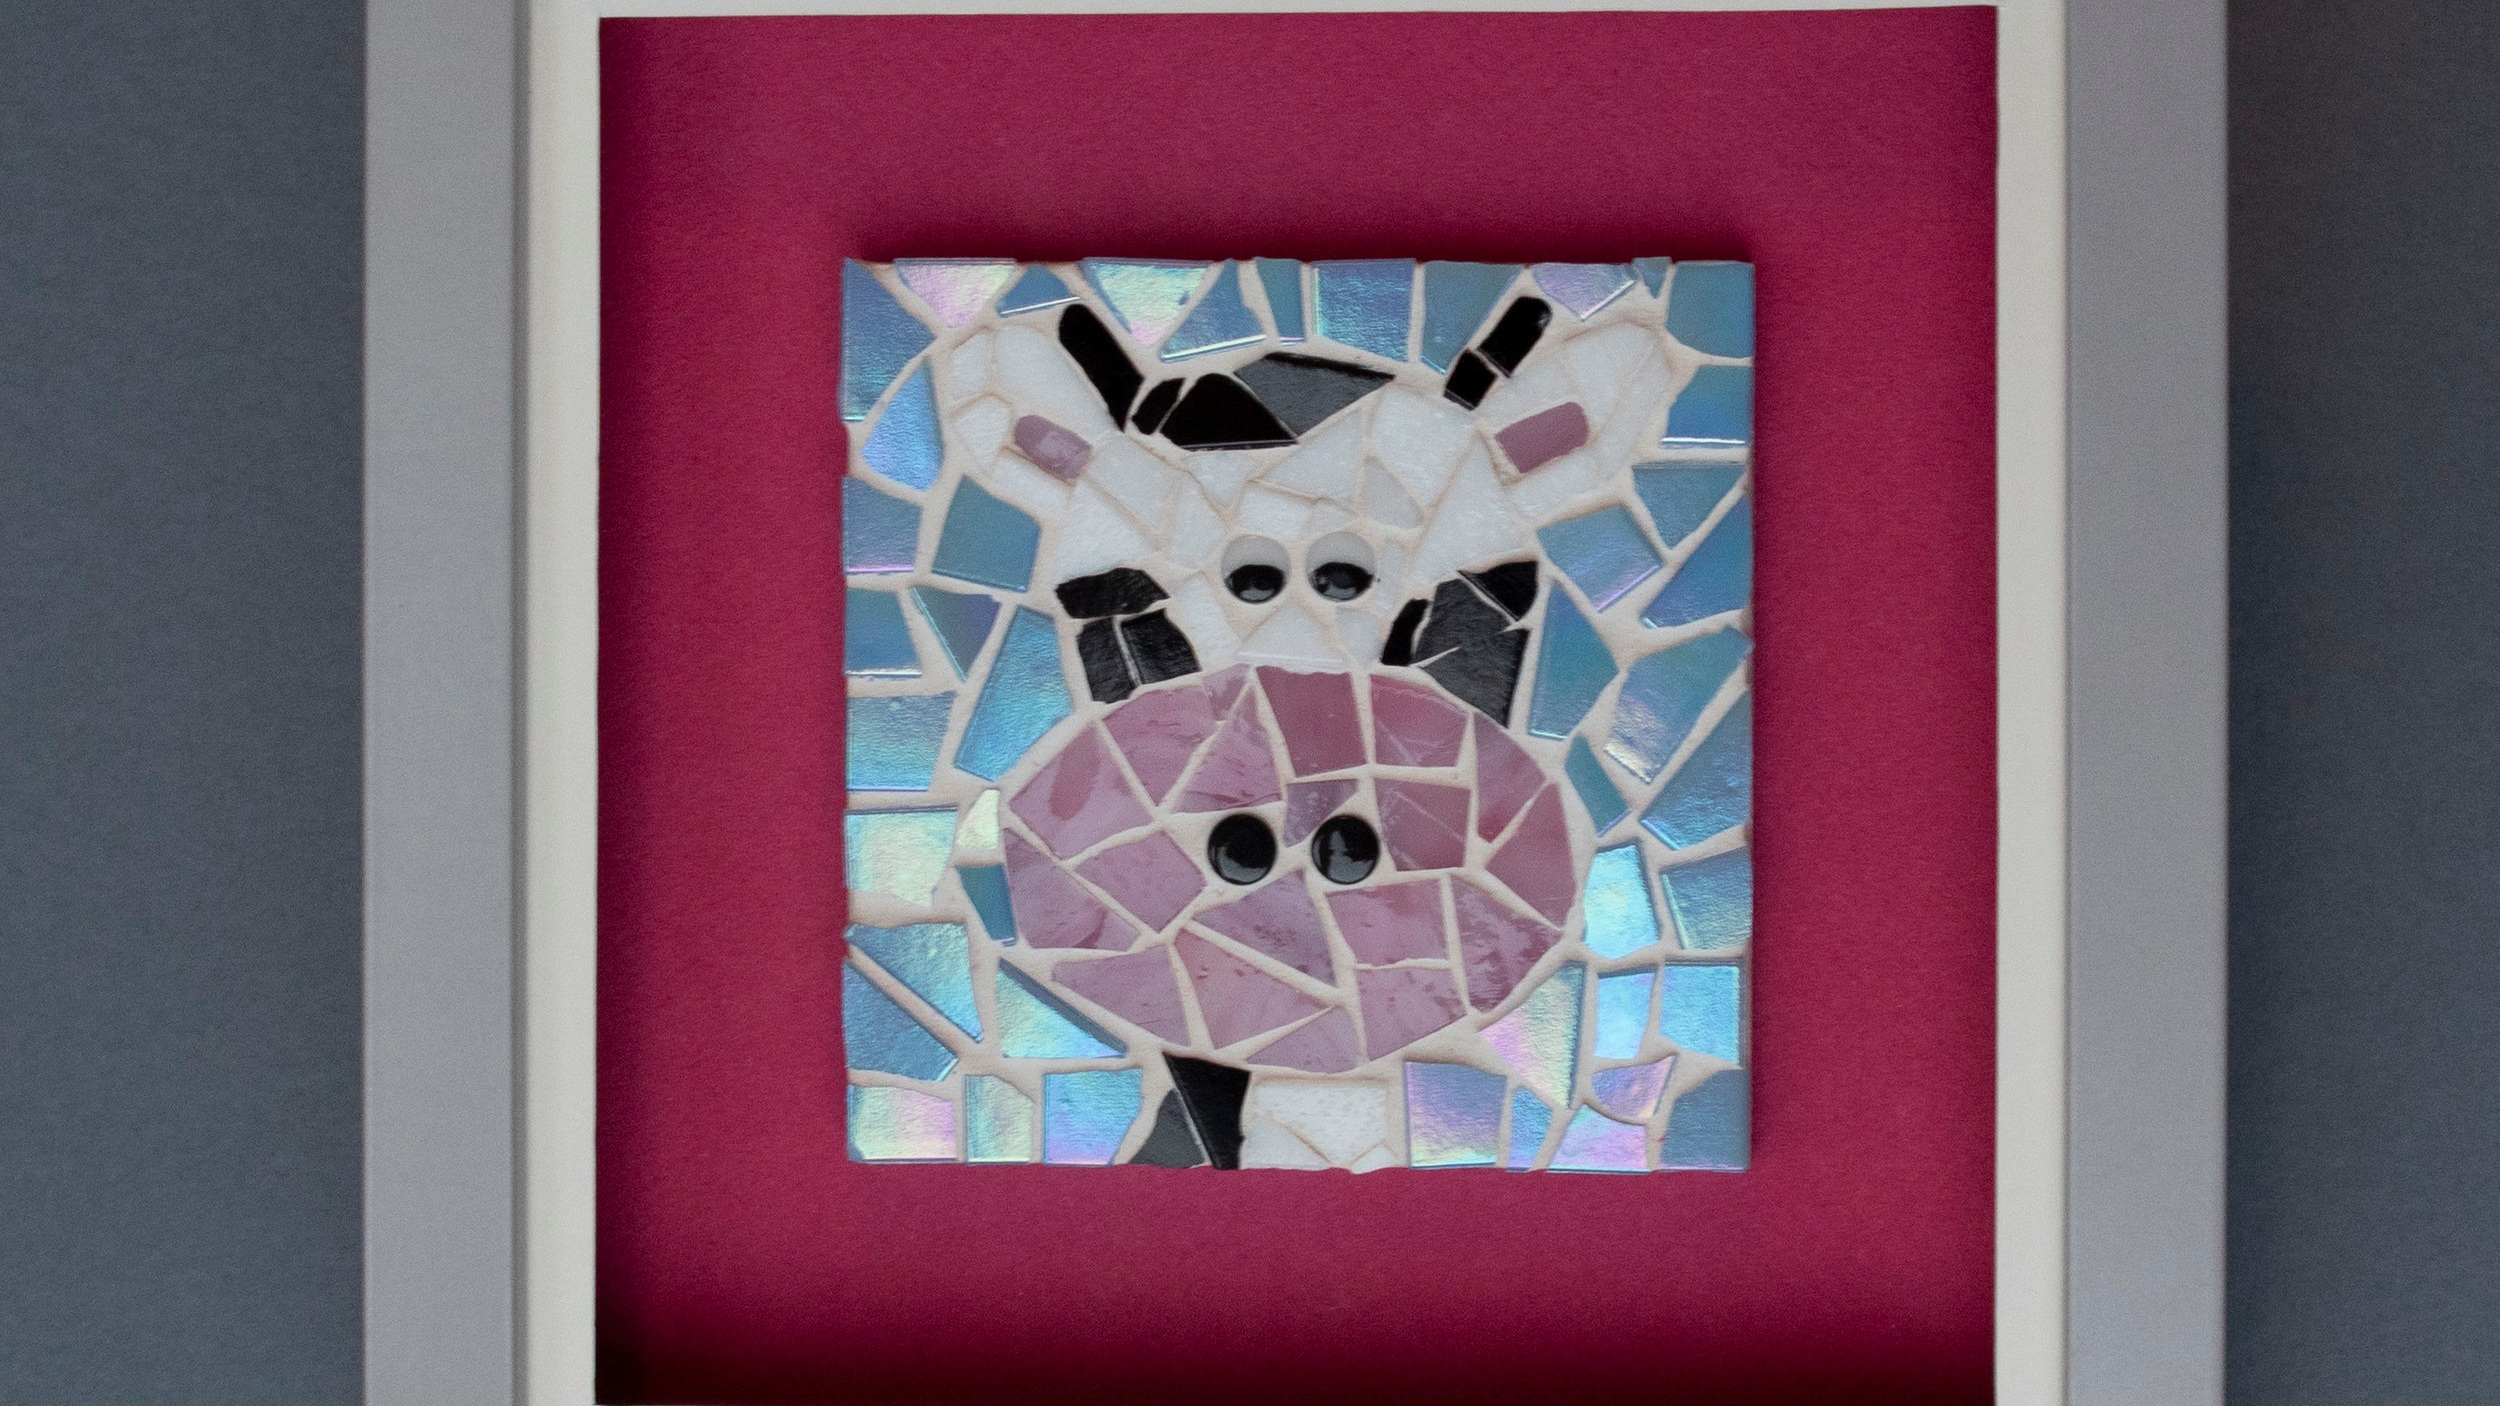 Berrybutton Designs - Berrybutton Designs handcraft beautiful and bespoke modern mosaic art and gifts.